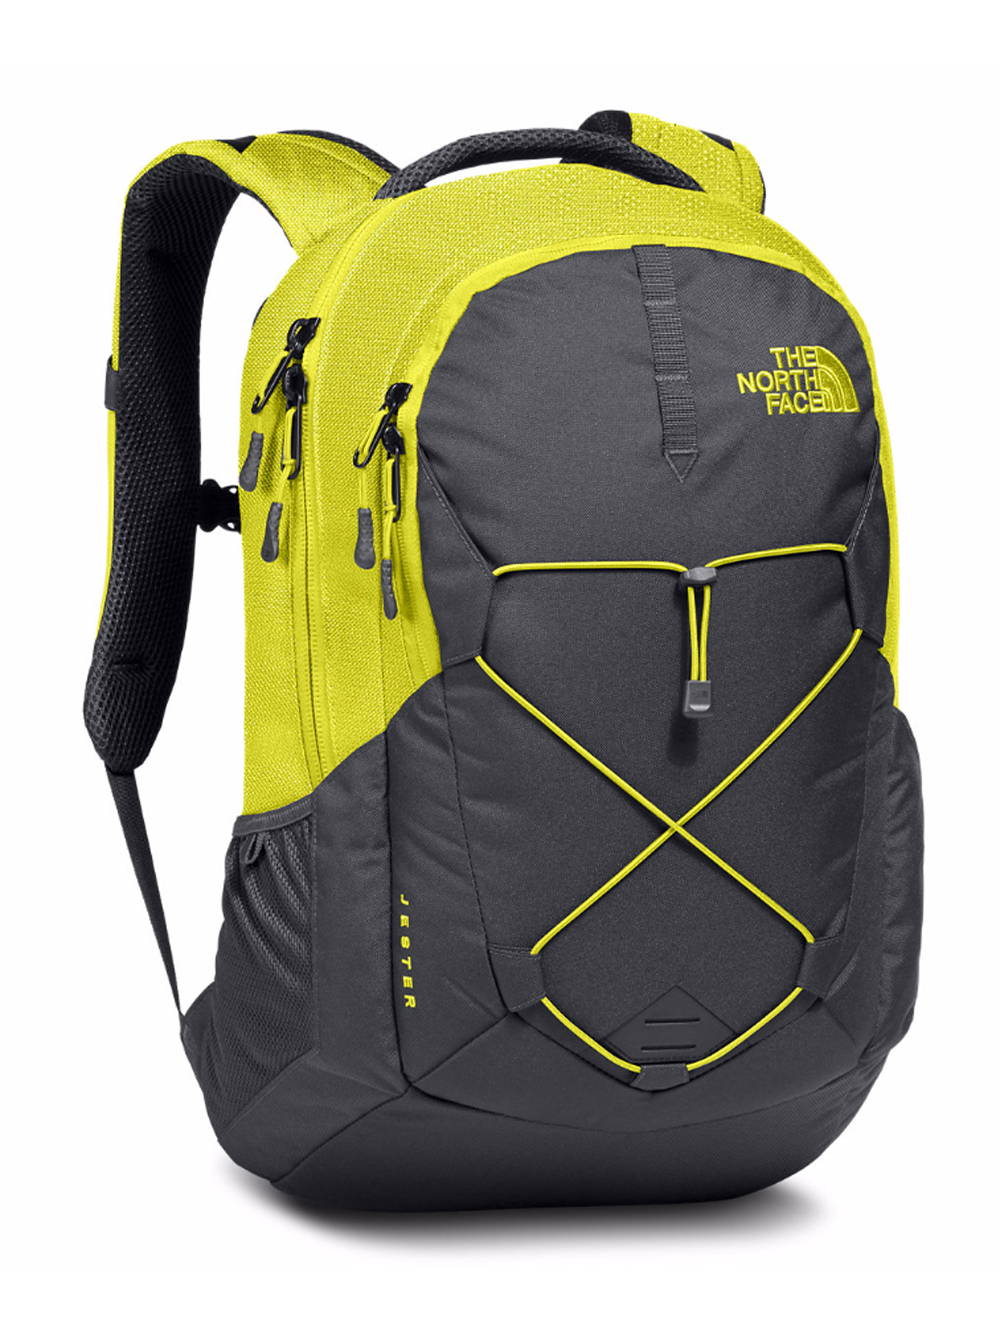 The North Face Jester Backpack - sulphur spring green/asphalt grey, one size